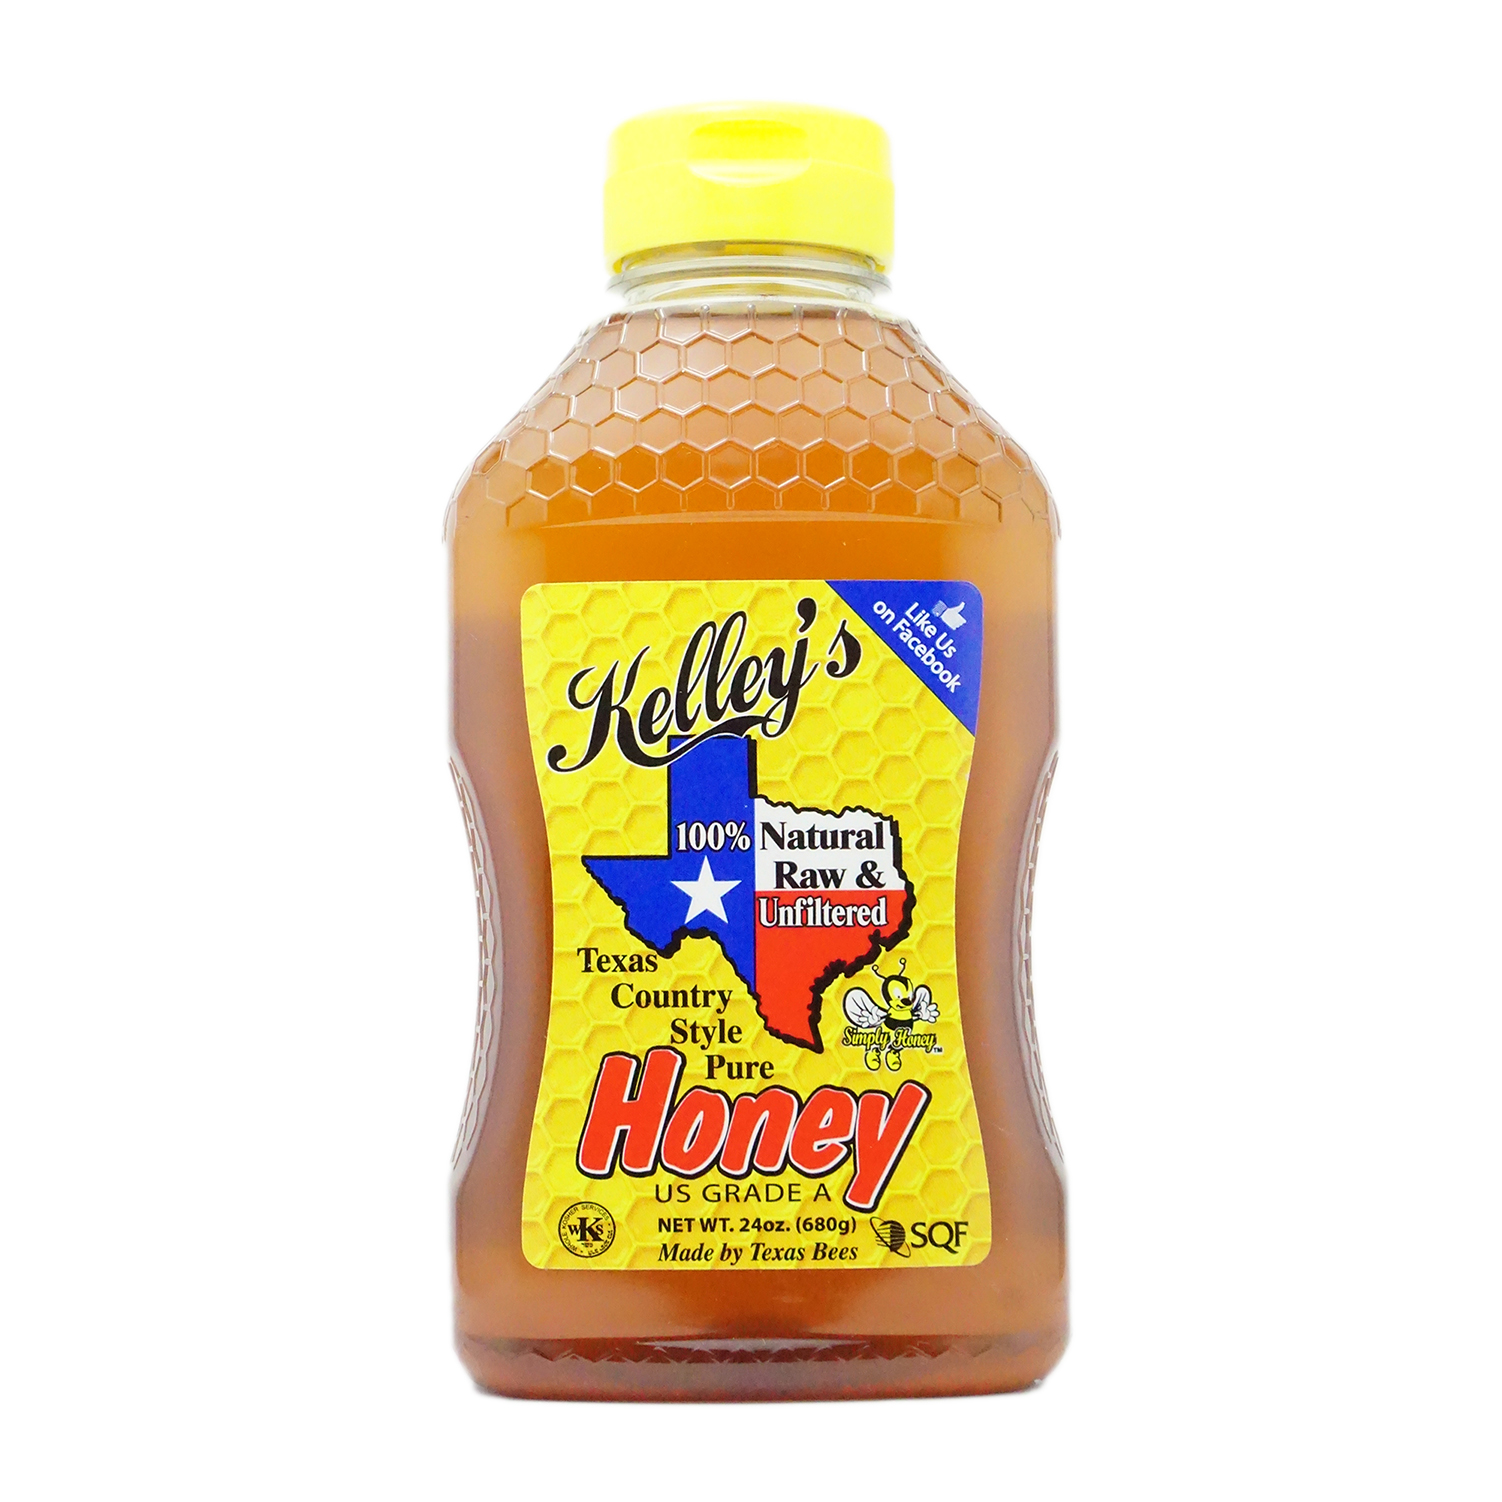 Kelley's Texas Country Style Pure Honey, 24 oz